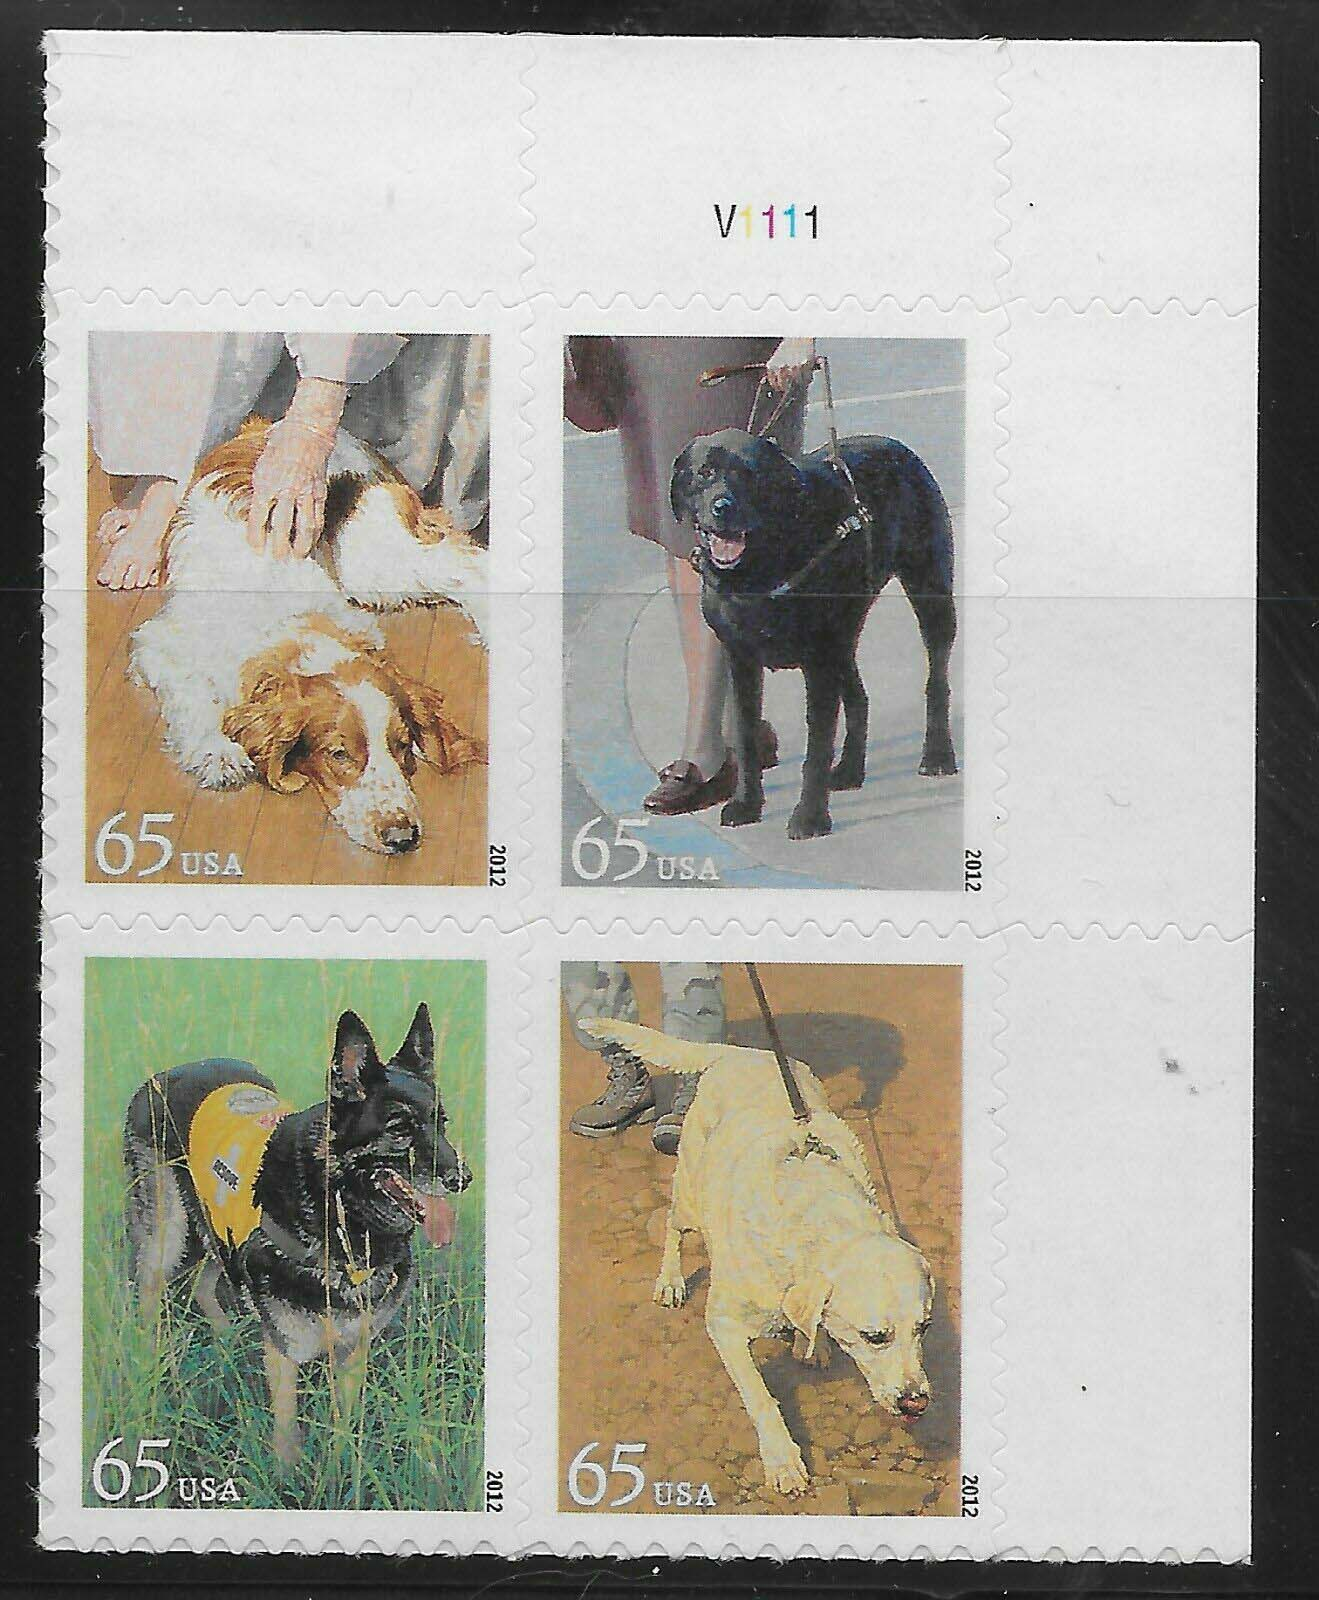 Scott #4604-4607, 65 cents, Plate Block of 4, Dogs at work